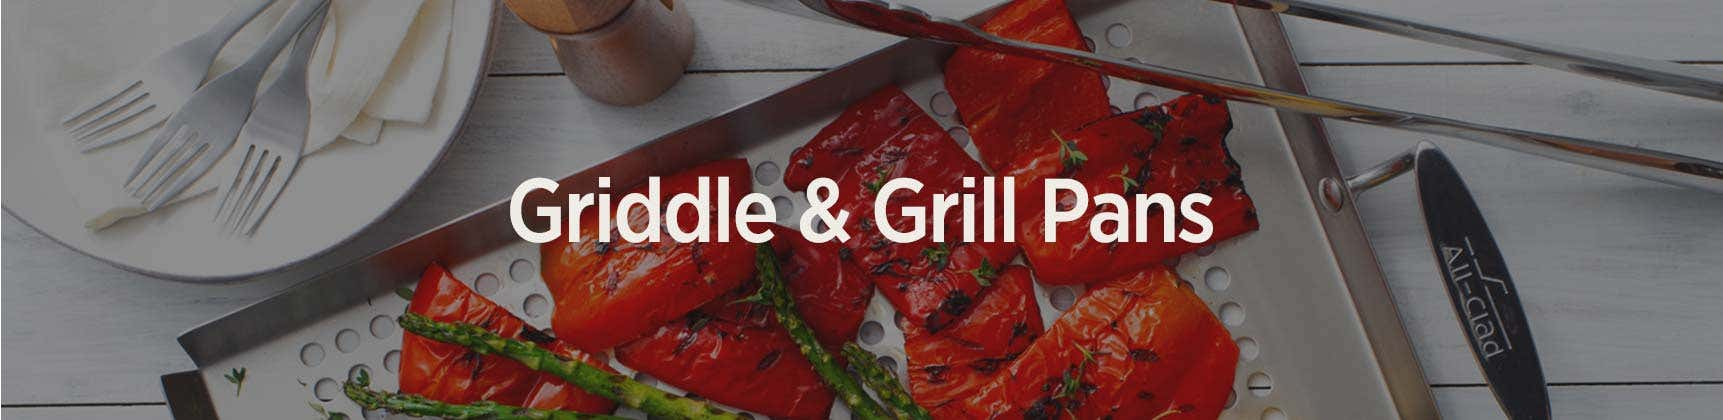 Griddle & Grill Pans